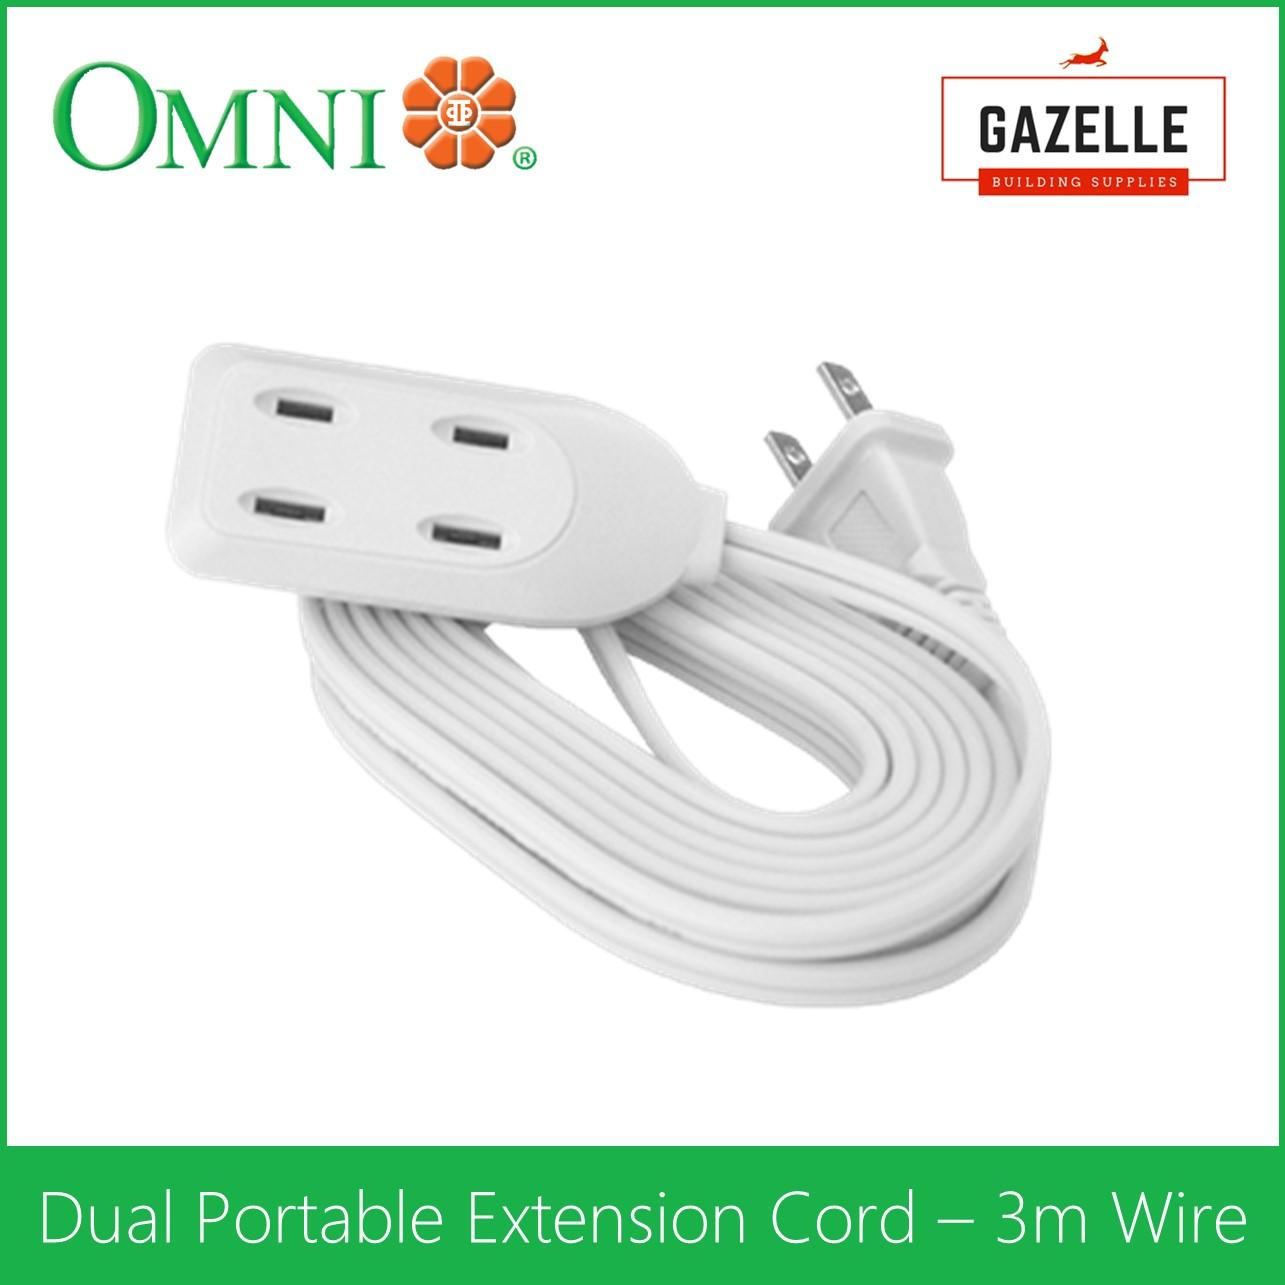 Extension Cord For Sale Electrical Cables Prices Brands Review Wiring Outdoor Sockets Uk Omni Dual Portable 3 Meter Wire Wdp 303